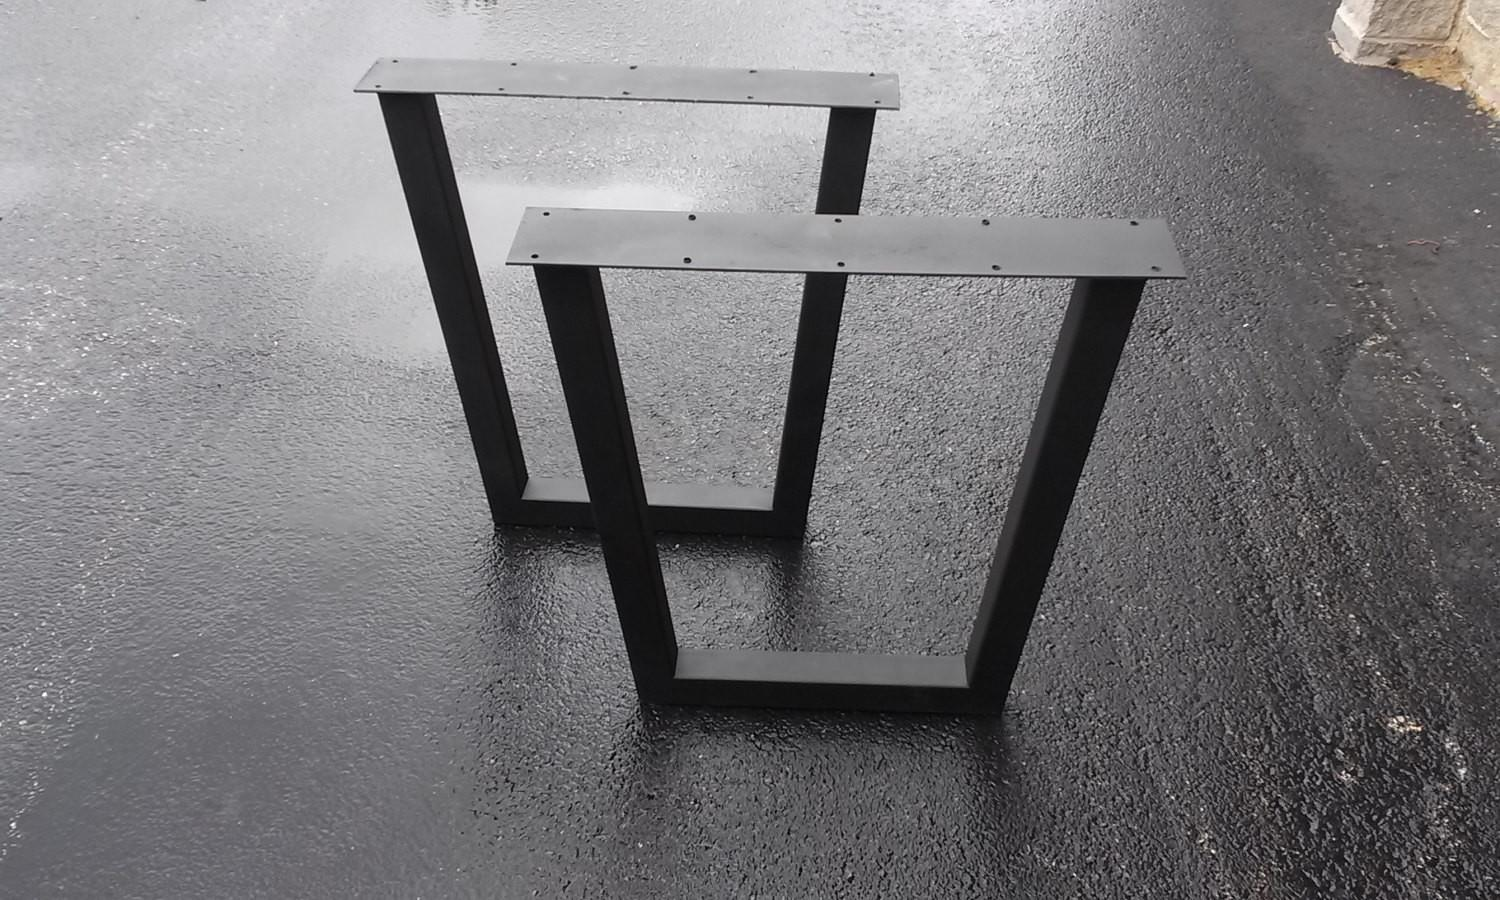 Tapered Metal Table Legs Diy Furniture Frame Any